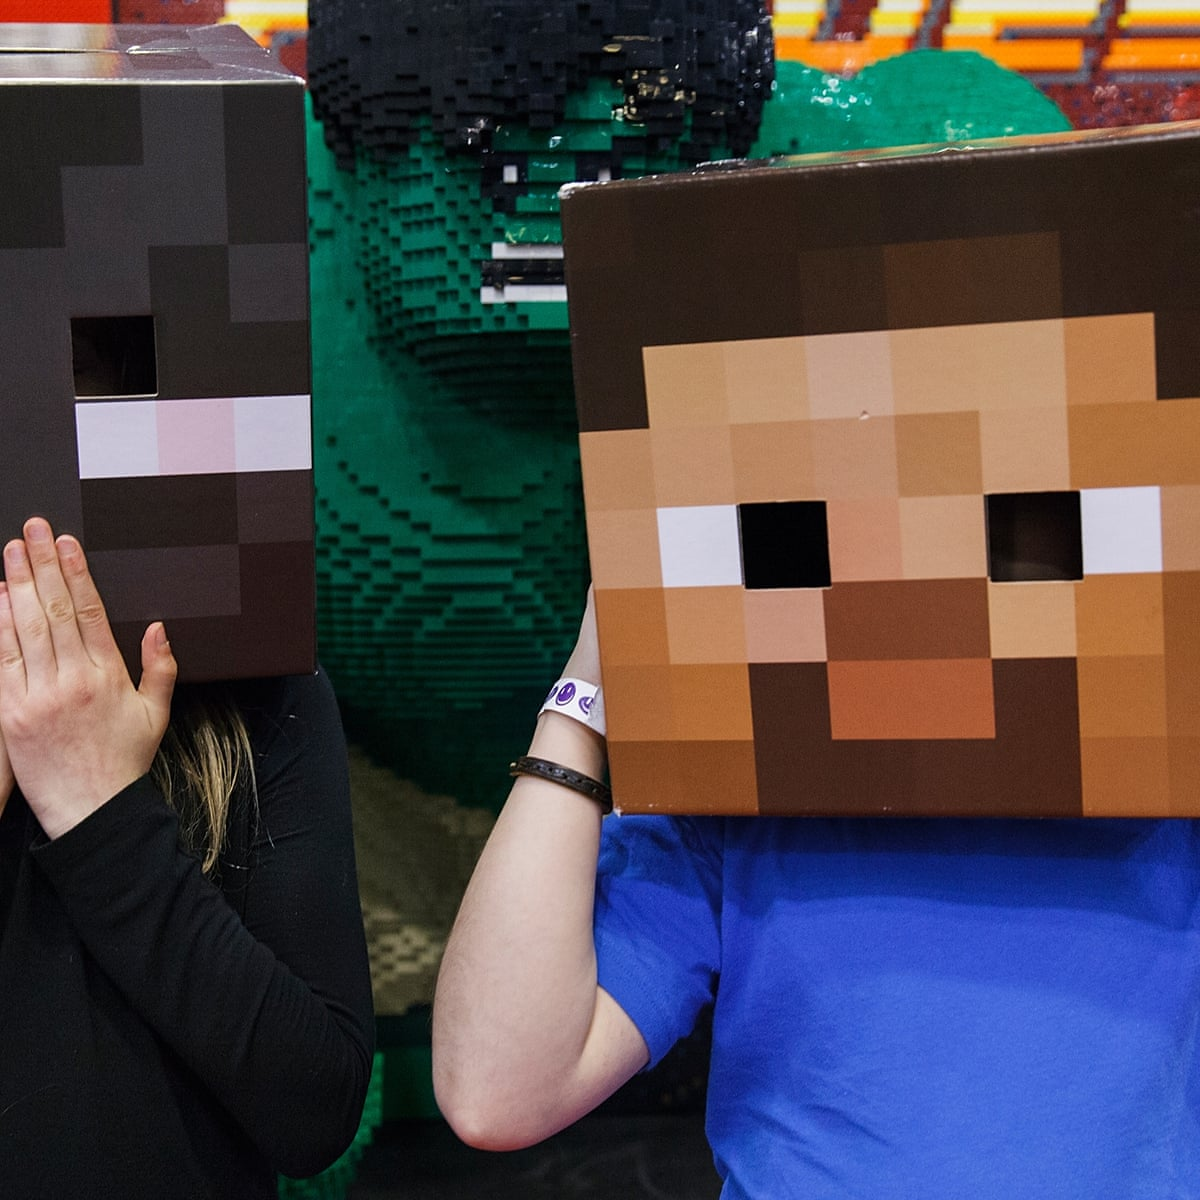 Your kids want to make Minecraft YouTube videos – but should you